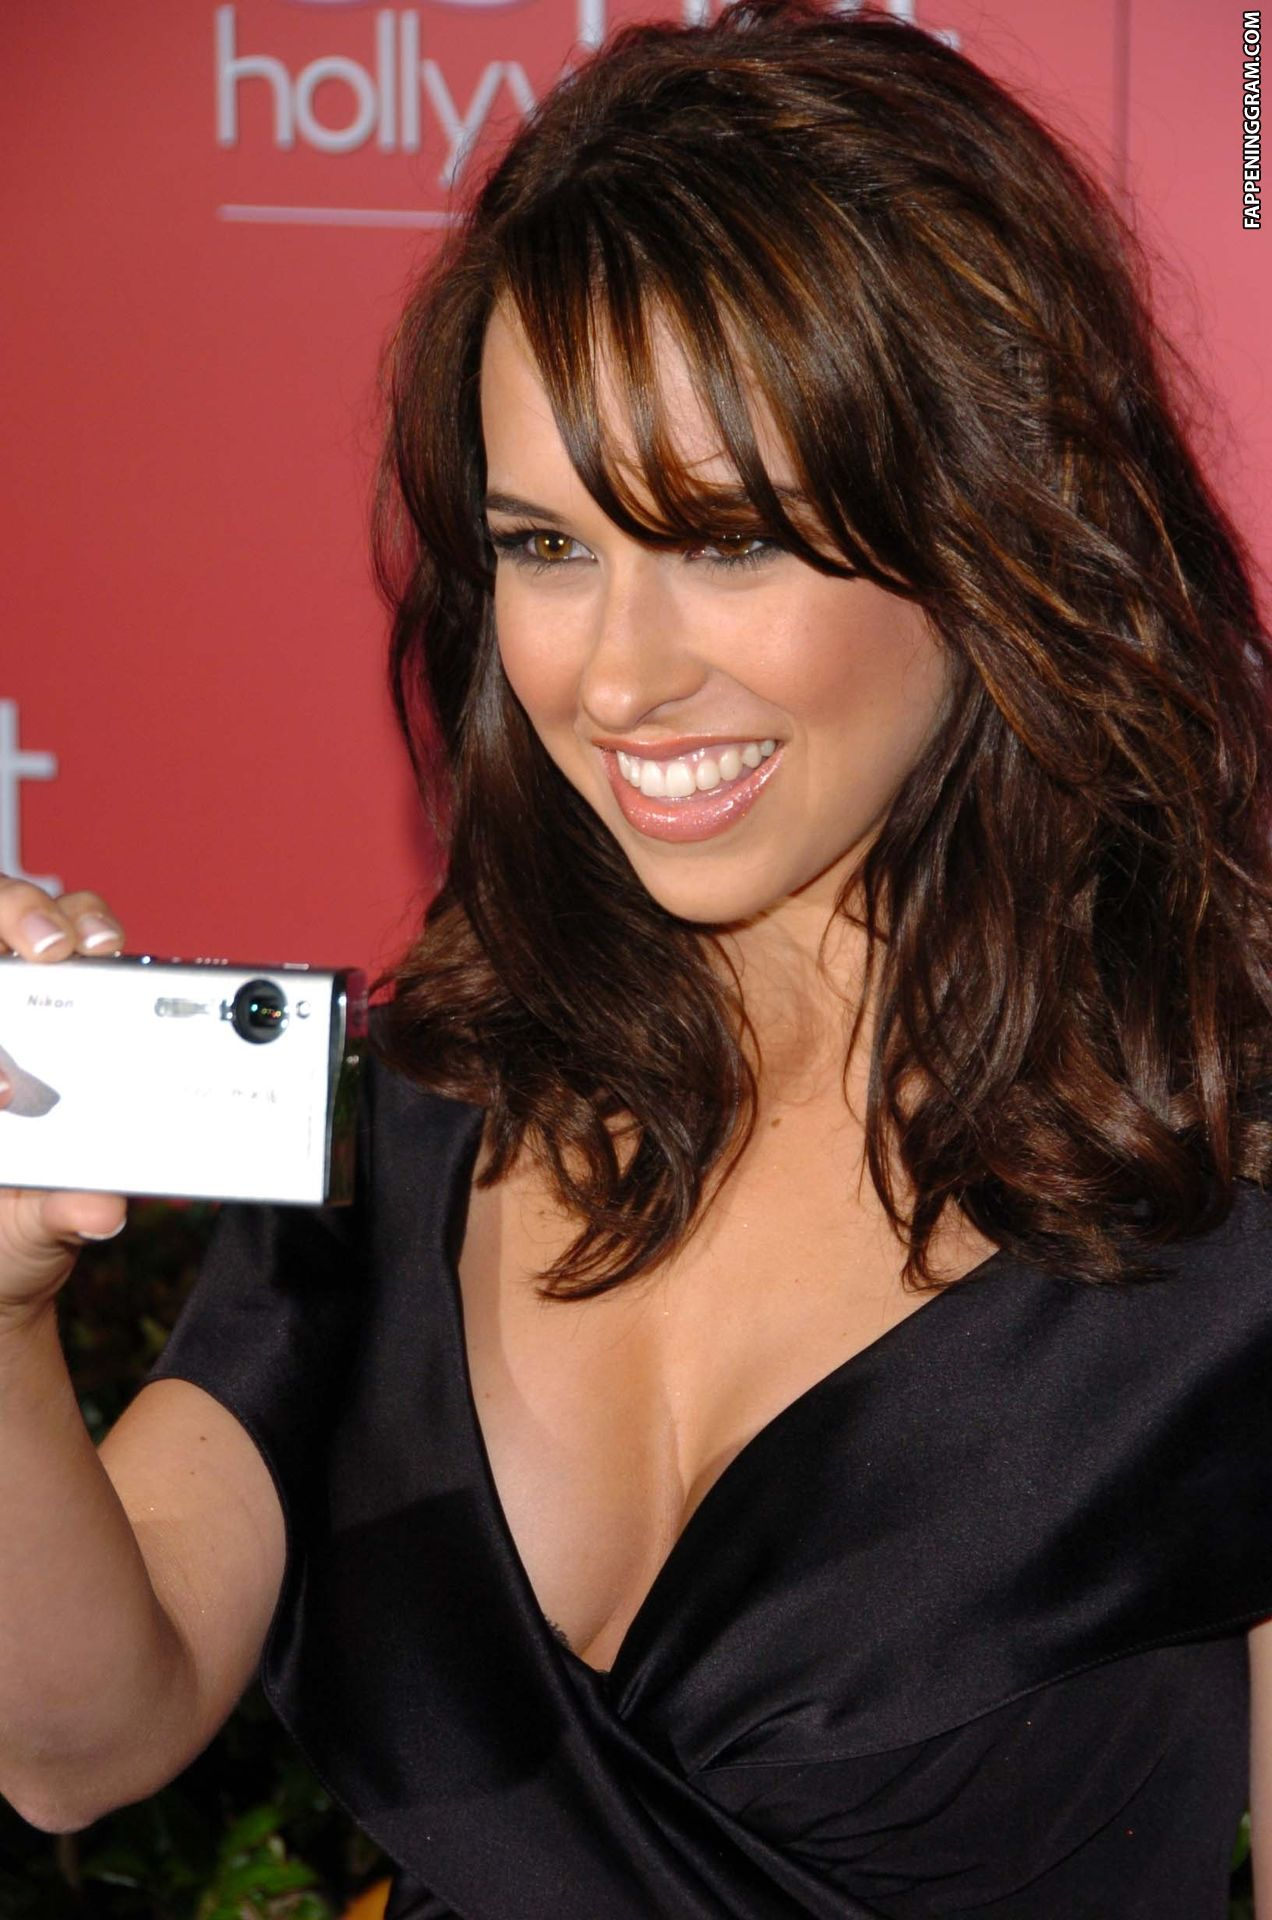 Lacey Chabert Nude The Fappening - Page 3 - FappeningGram